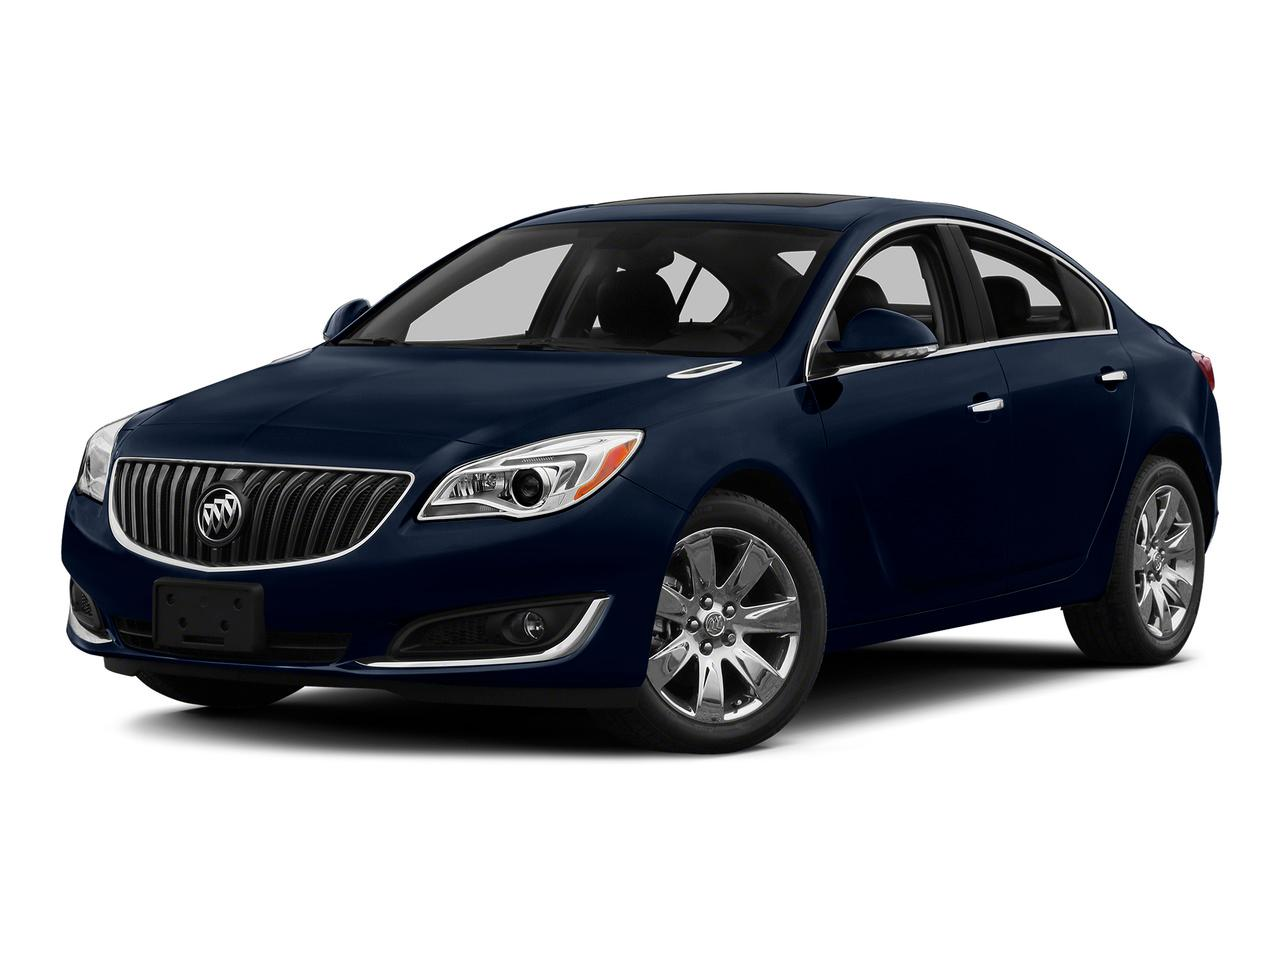 2015 Buick Regal Vehicle Photo in Depew, NY 14043